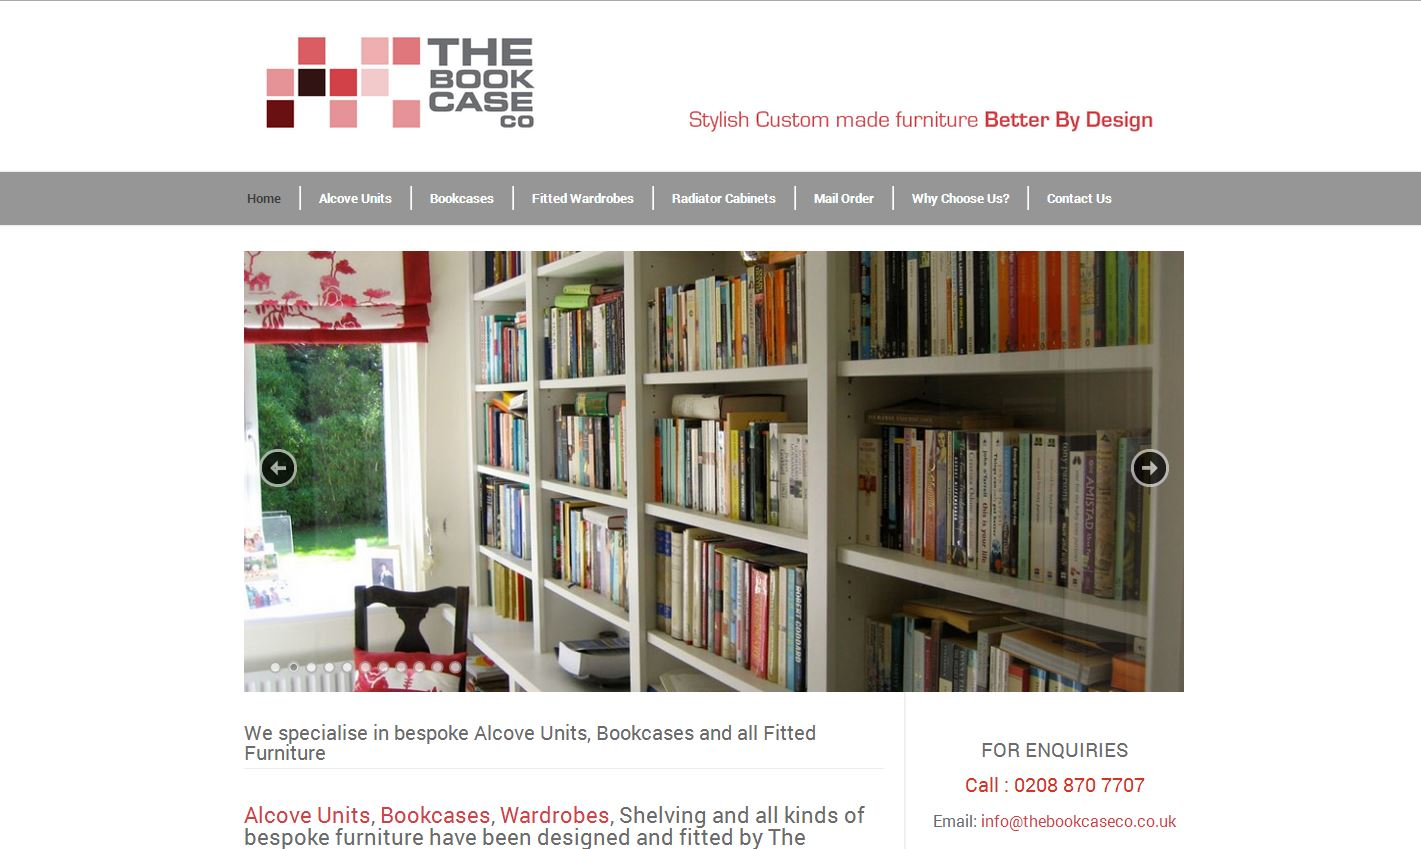 thebookcaseco.co.uk